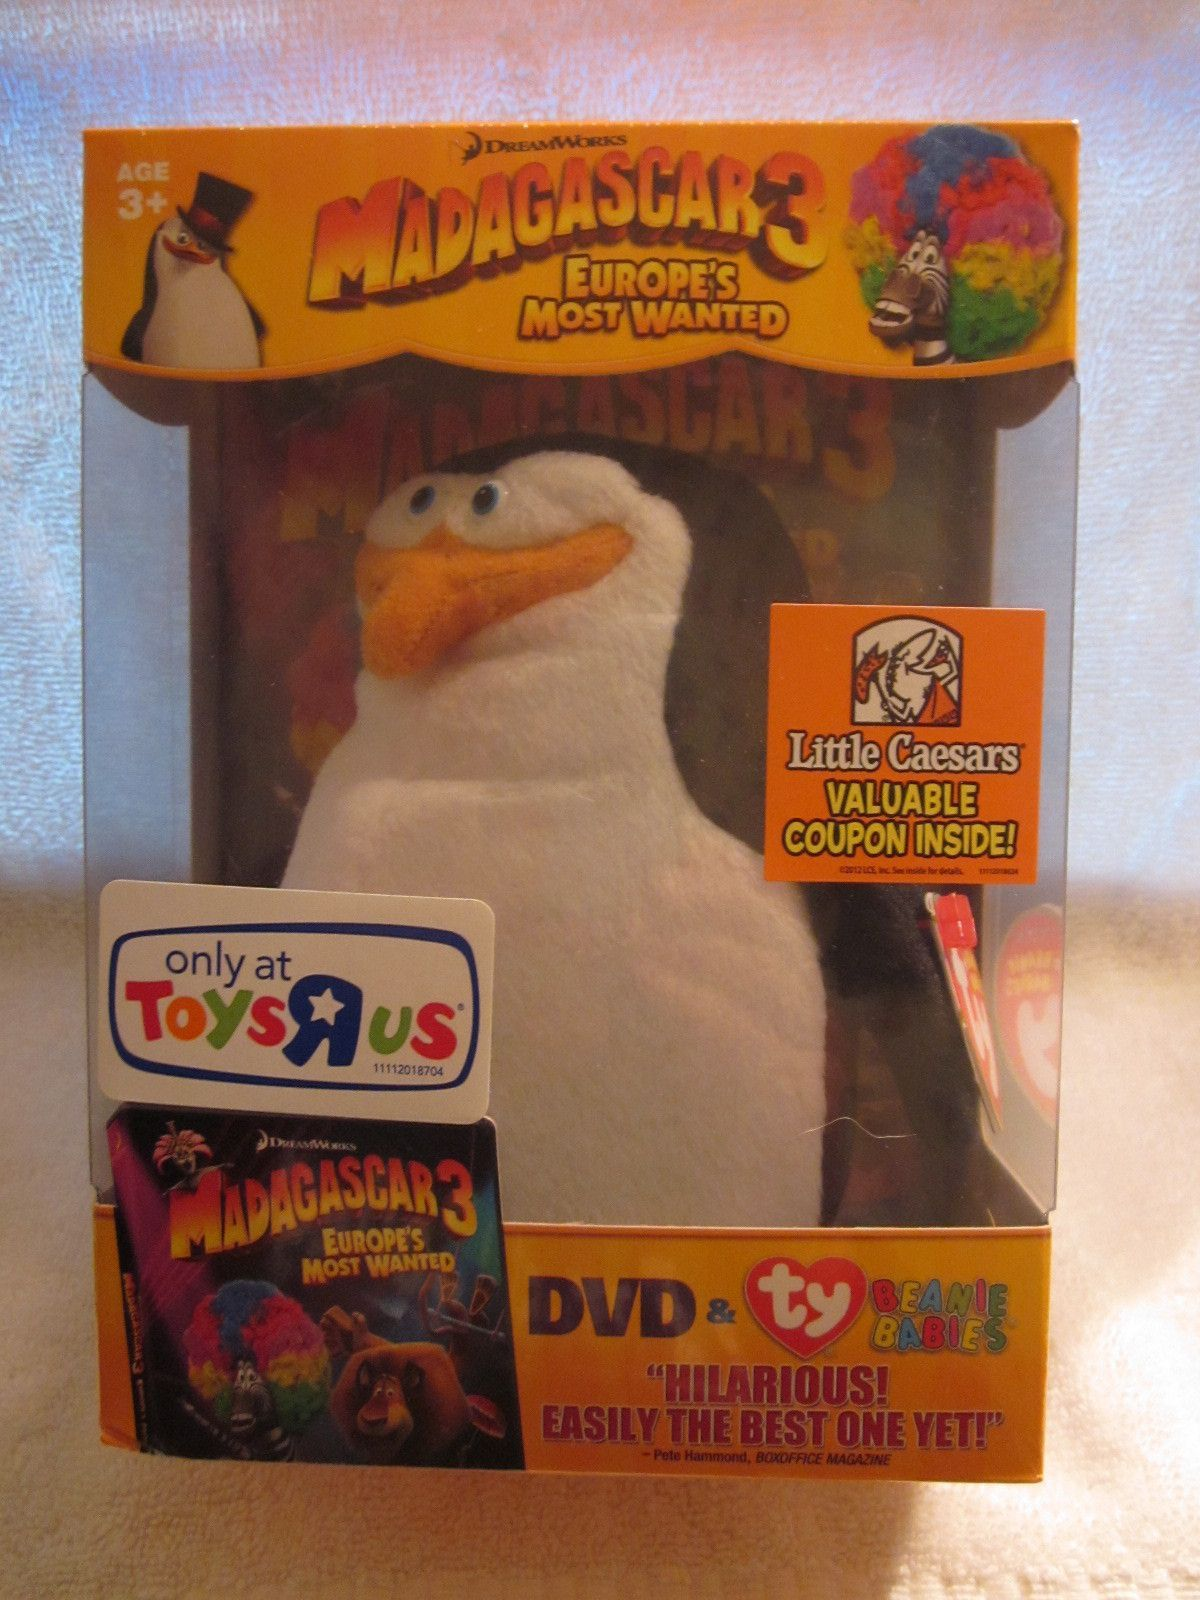 Toys R Us Dvd : Blu ray dvd exclusives madagascar europe s most